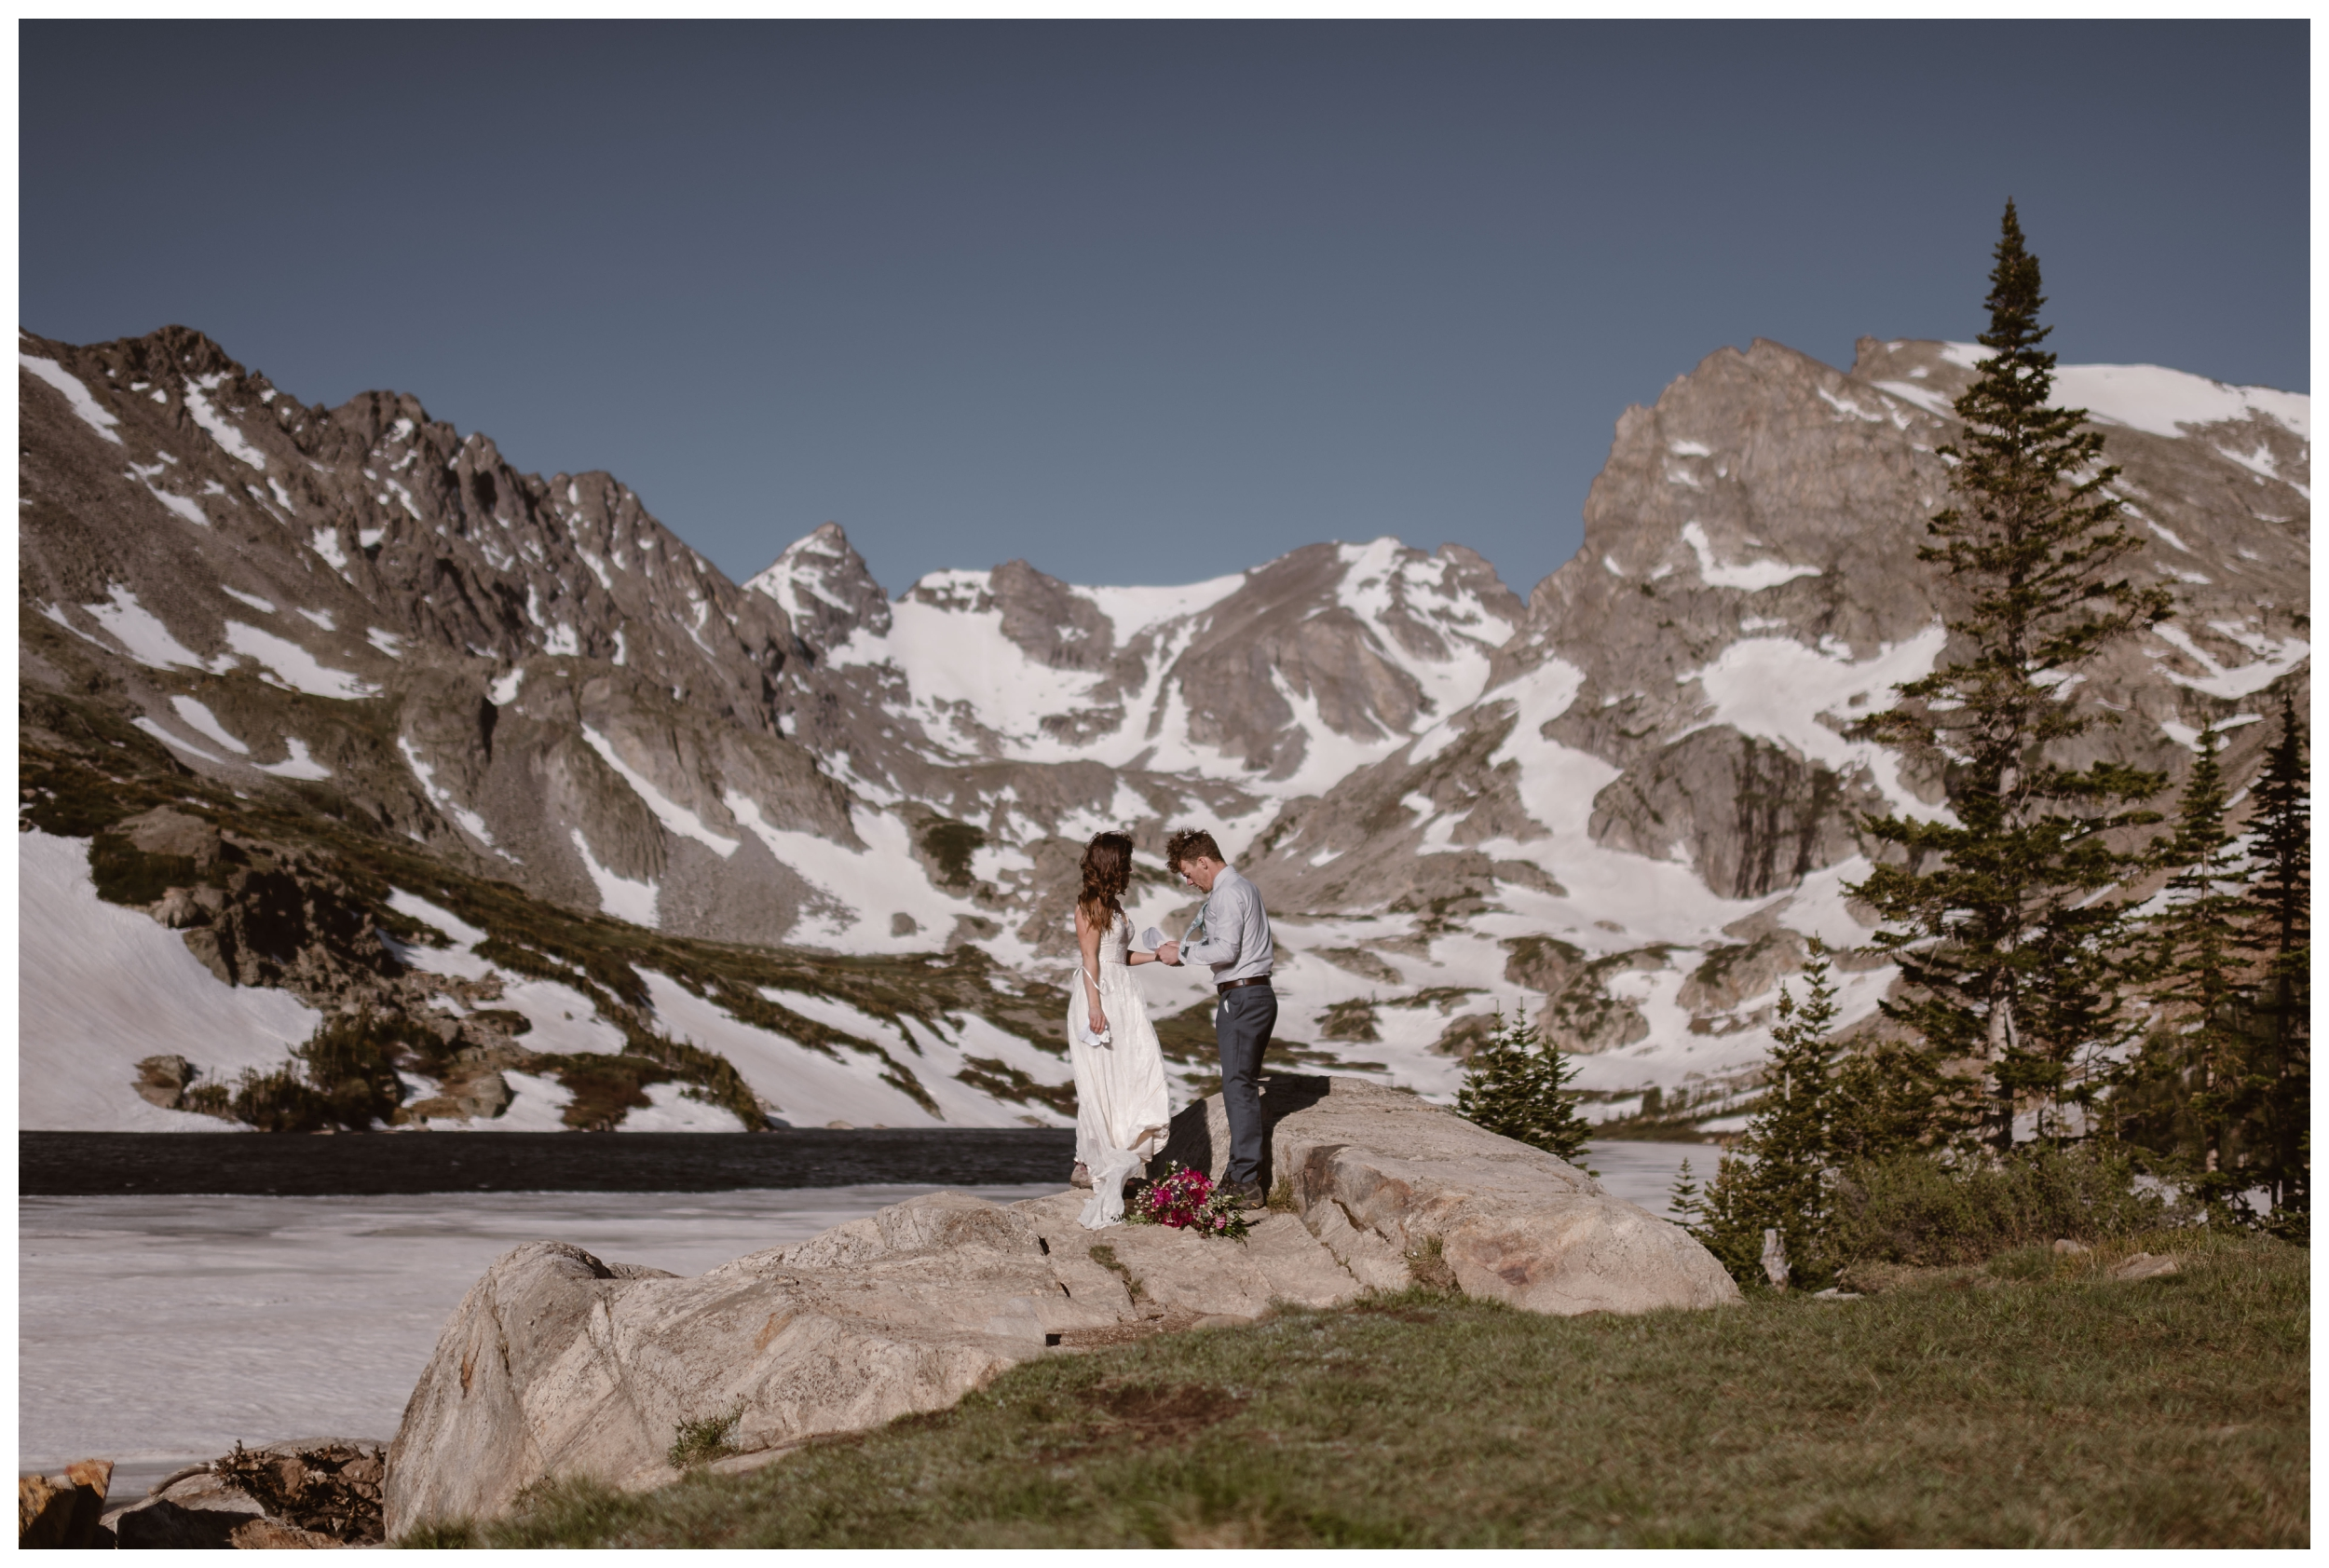 Karen and Matt say their vows during their self solemnizing adventure elopement ceremony with snowy mountain peaks behind them. Photo by Adventure Instead, Maddie Mae.